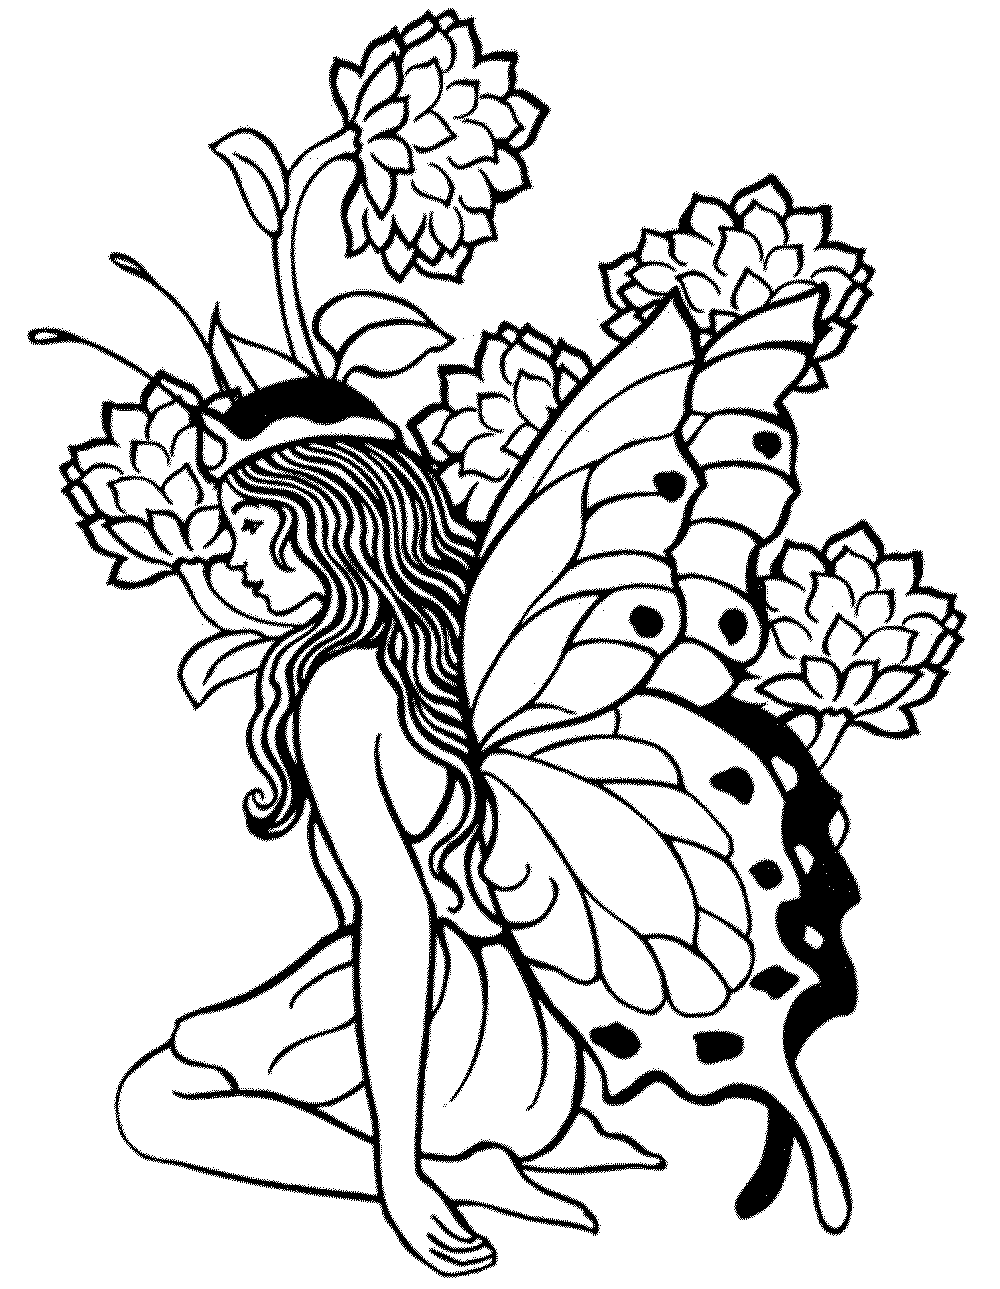 44 Top Colouring Pages Adults Printable Images & Pictures In HD